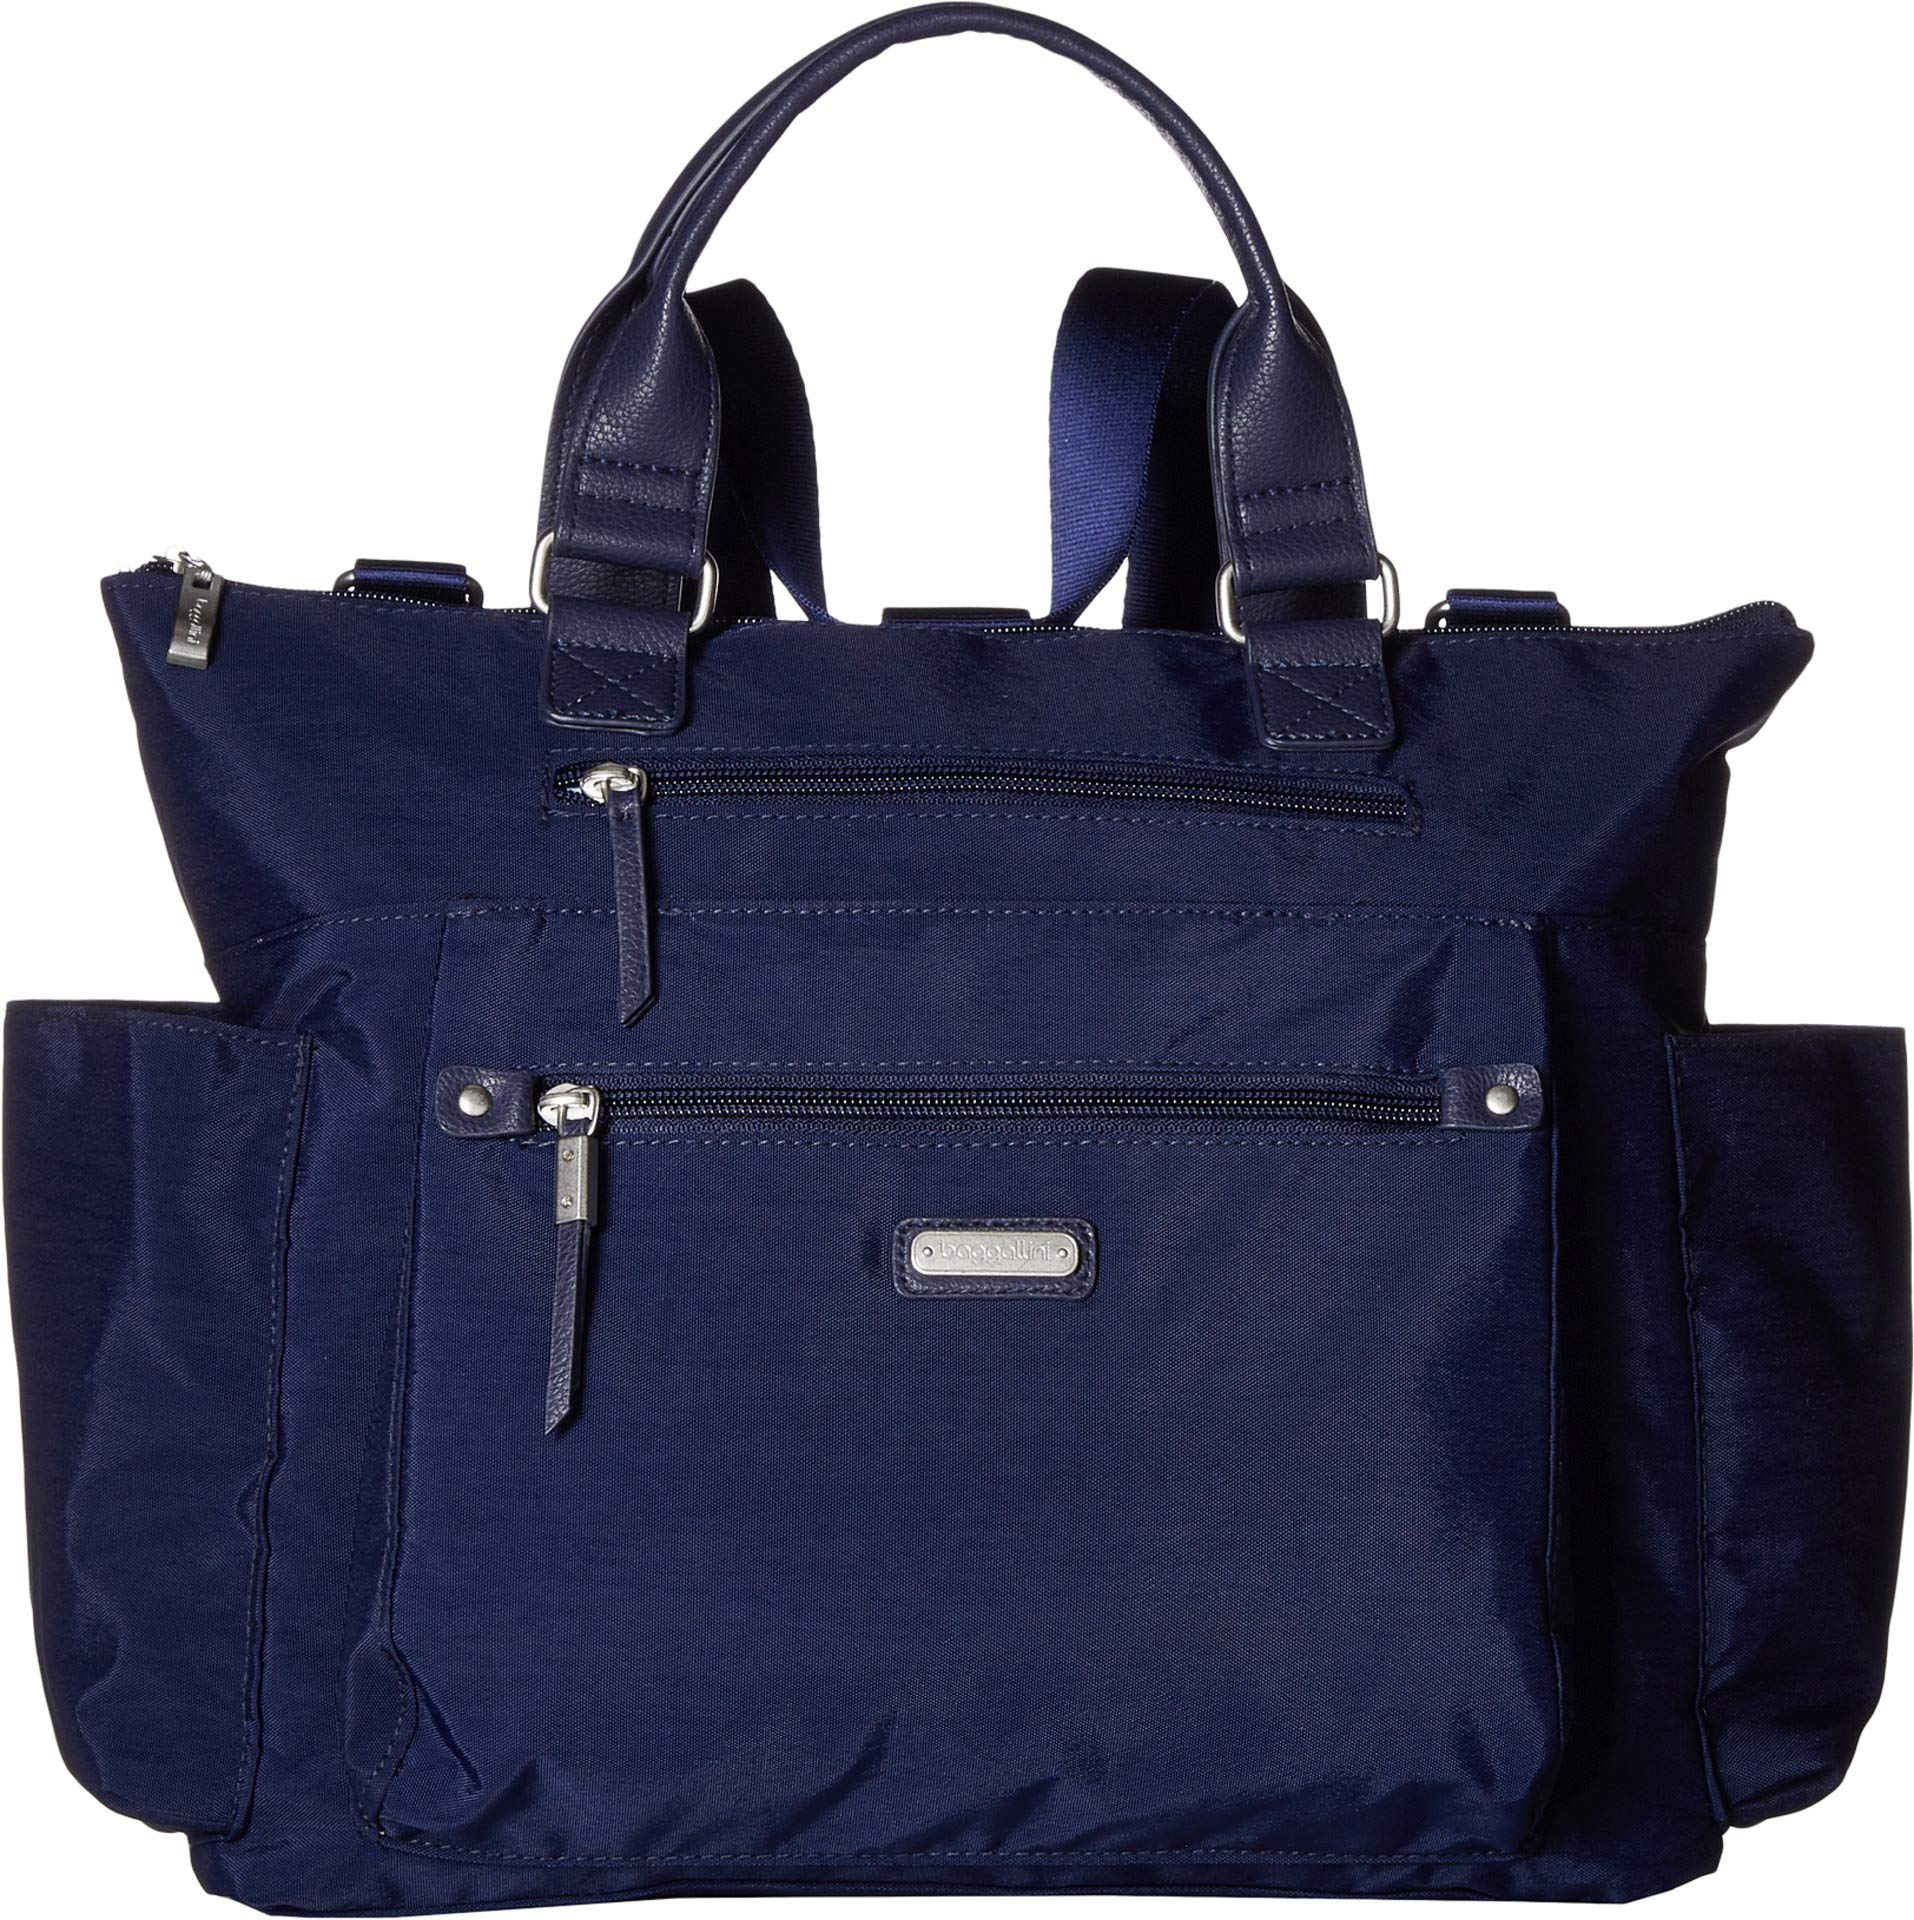 Baggallini 3-in-1 convertible backpack with RFID phone wristlet (Navy)